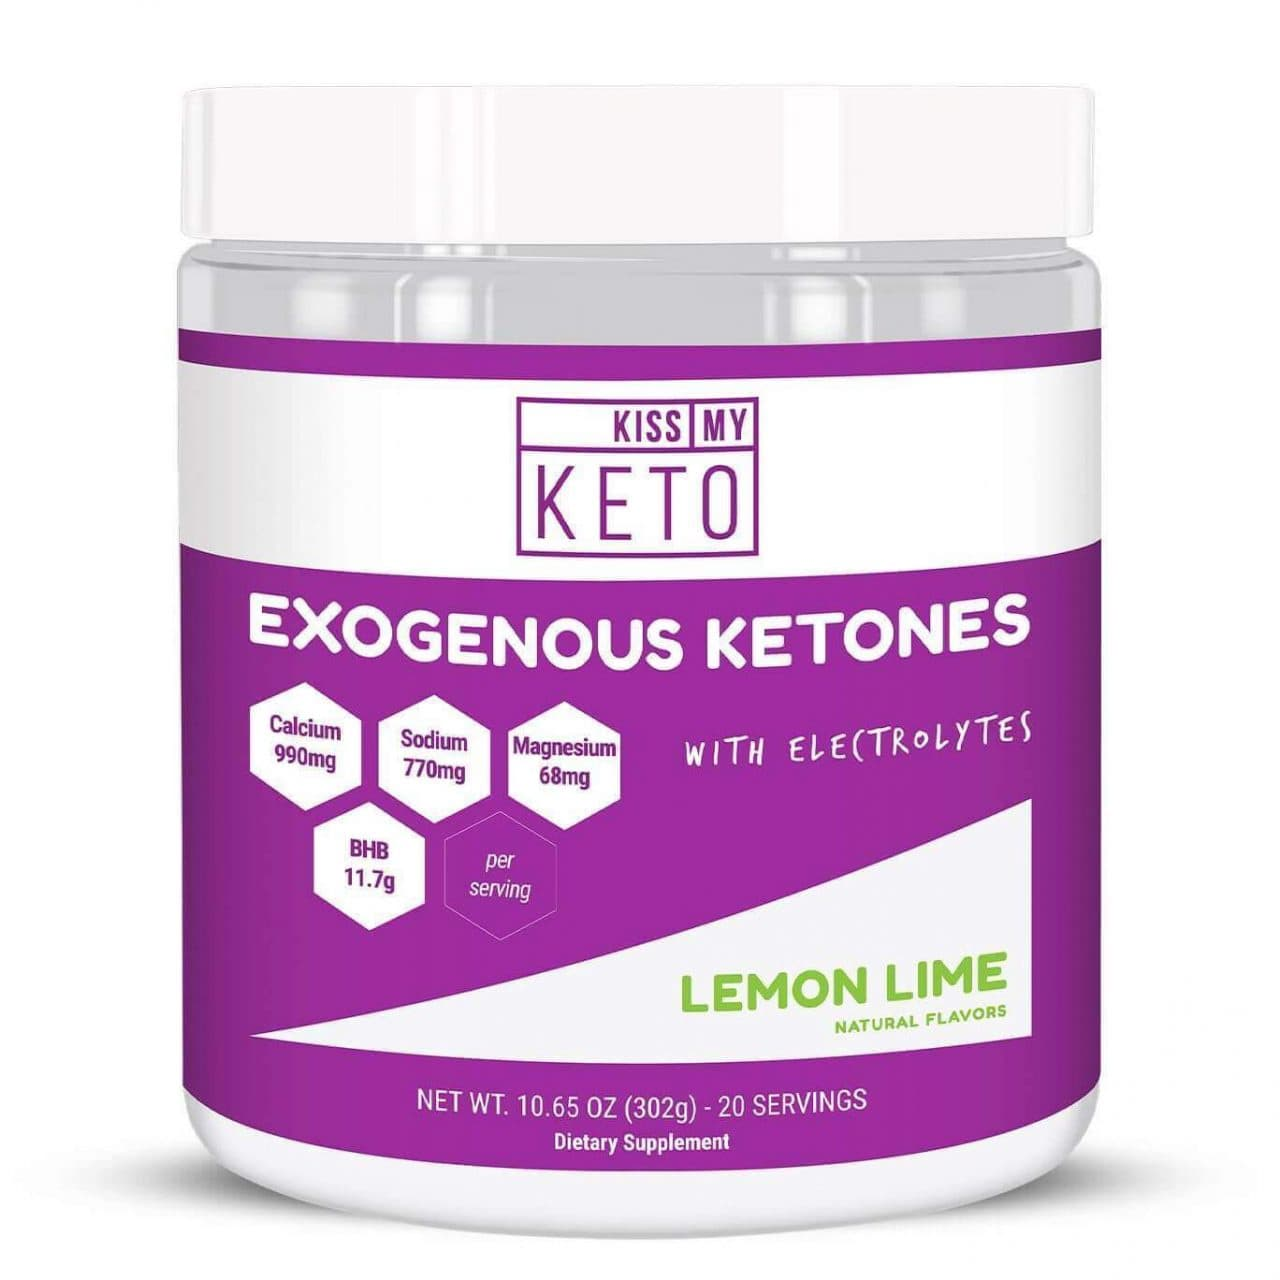 Kiss My Keto Exogenous Ketones (Lemon Lime)